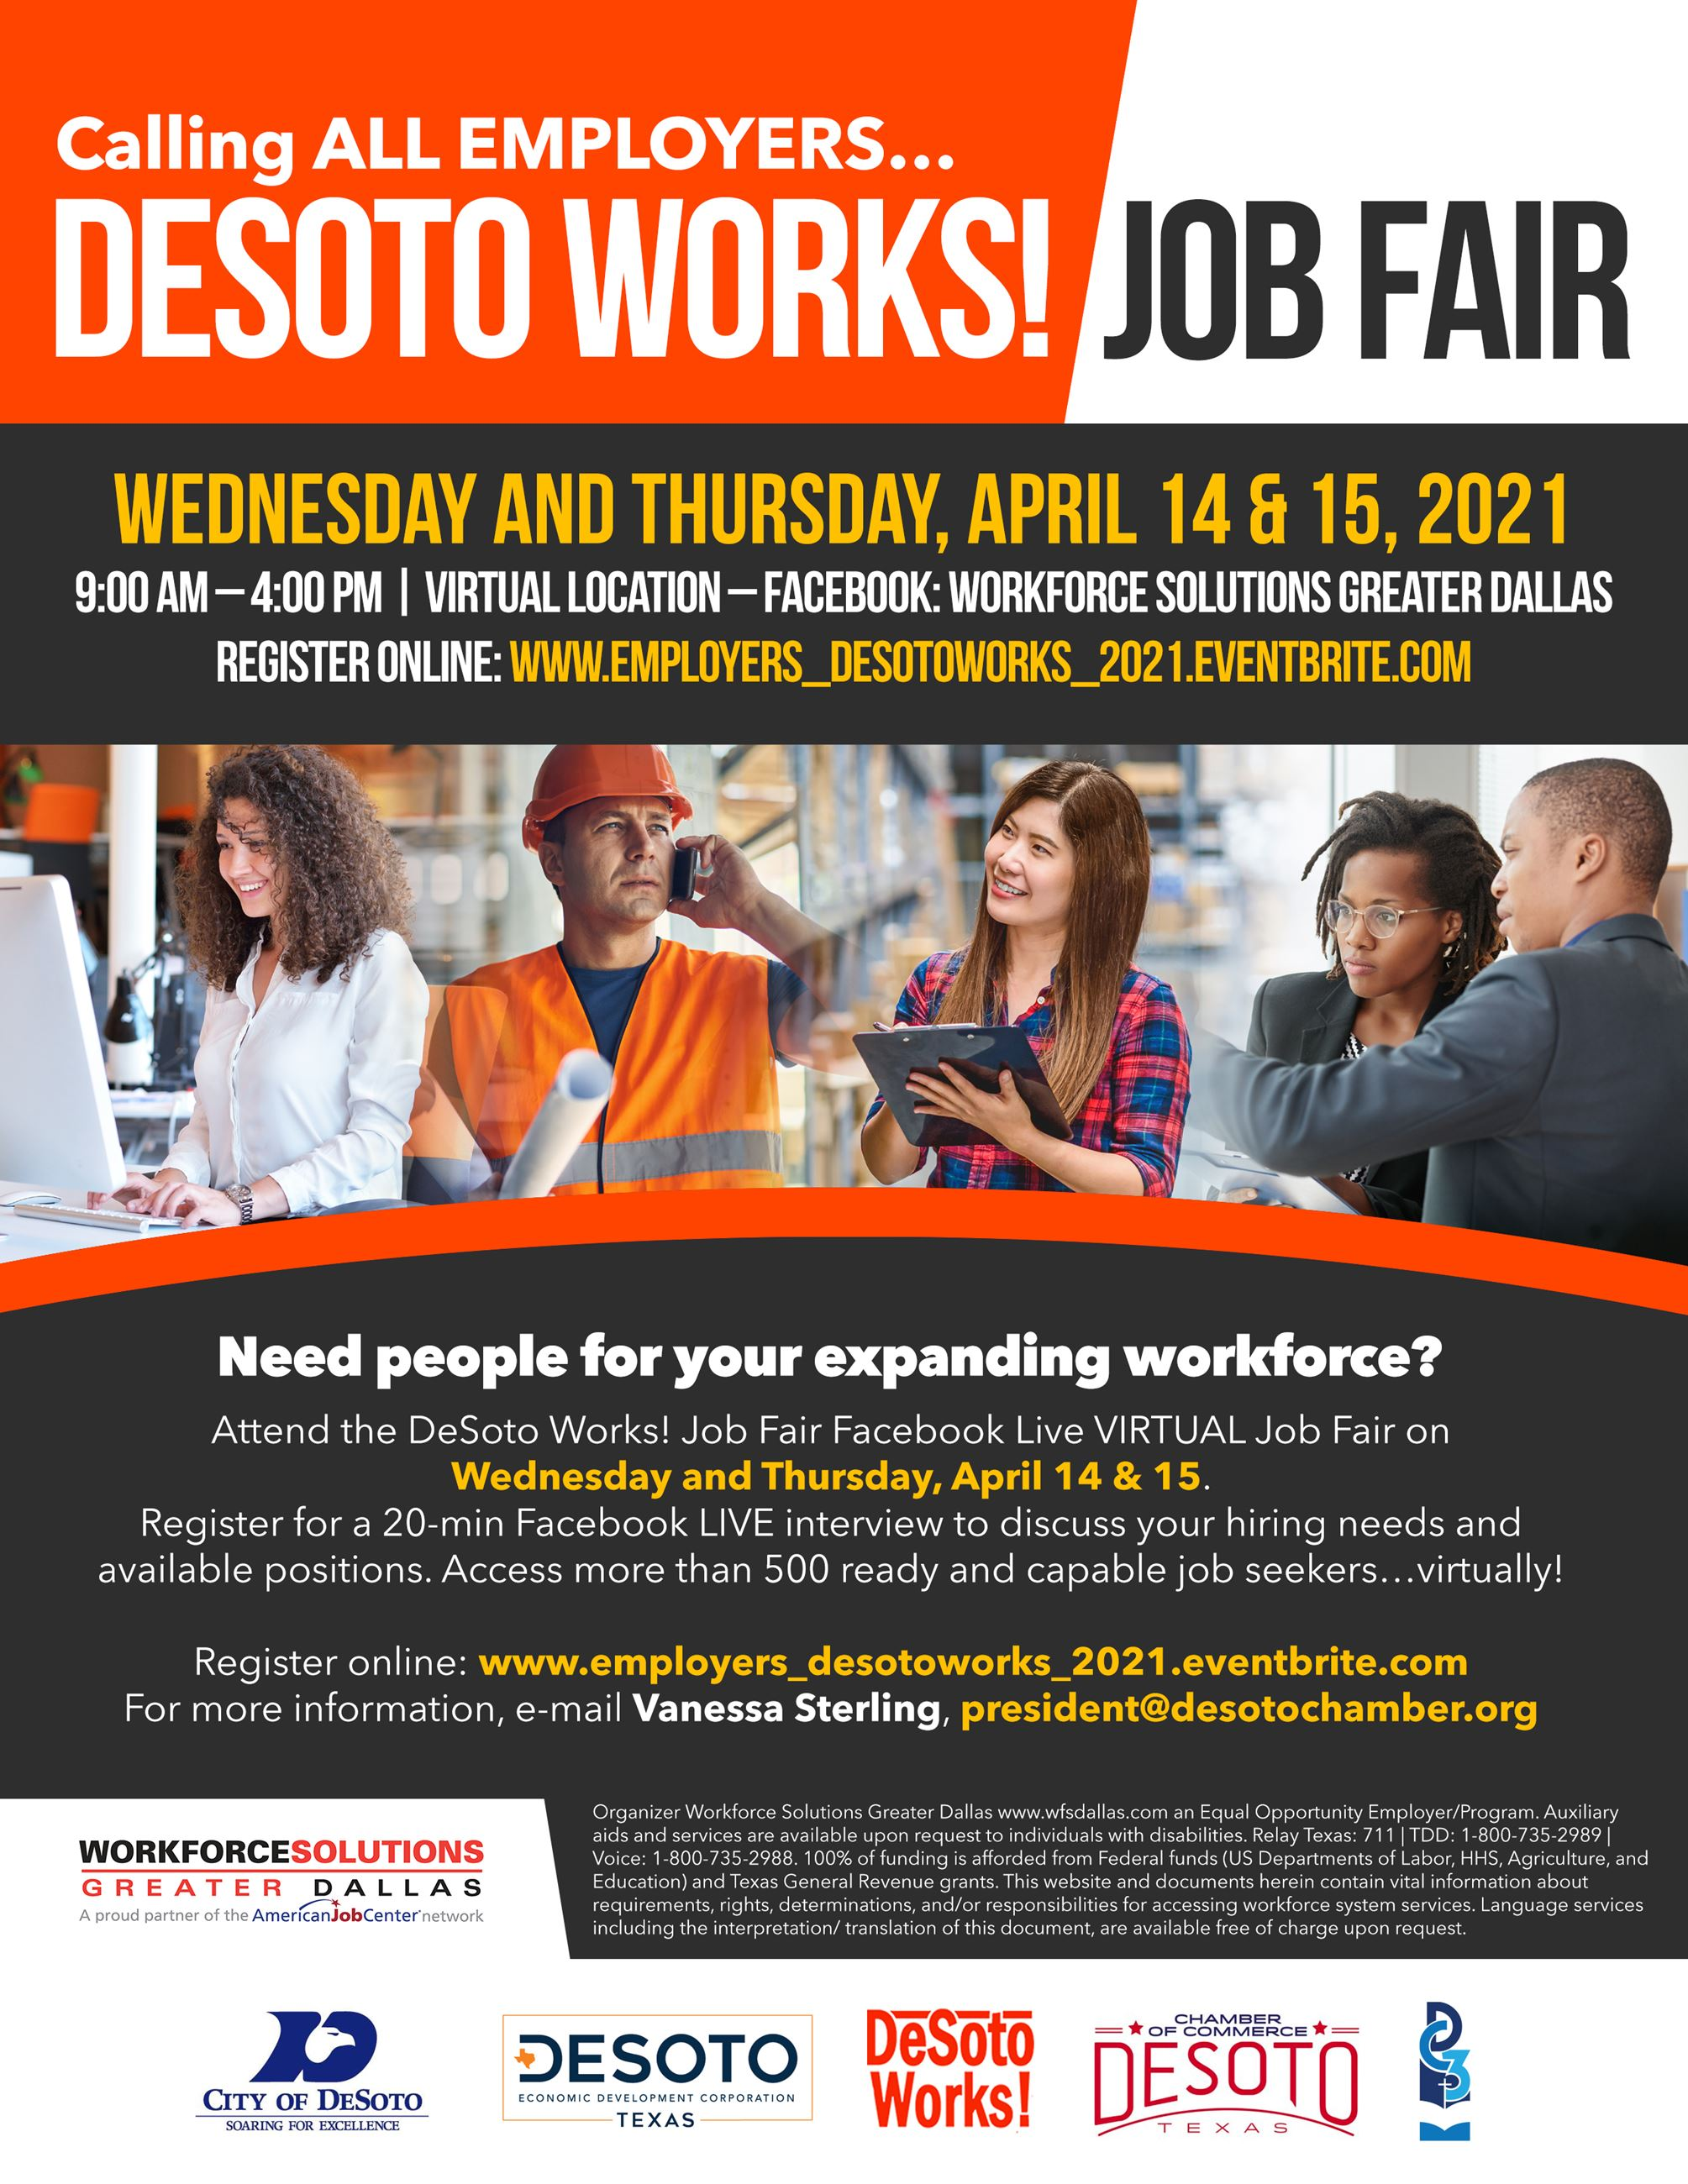 DeSoto Works Employer